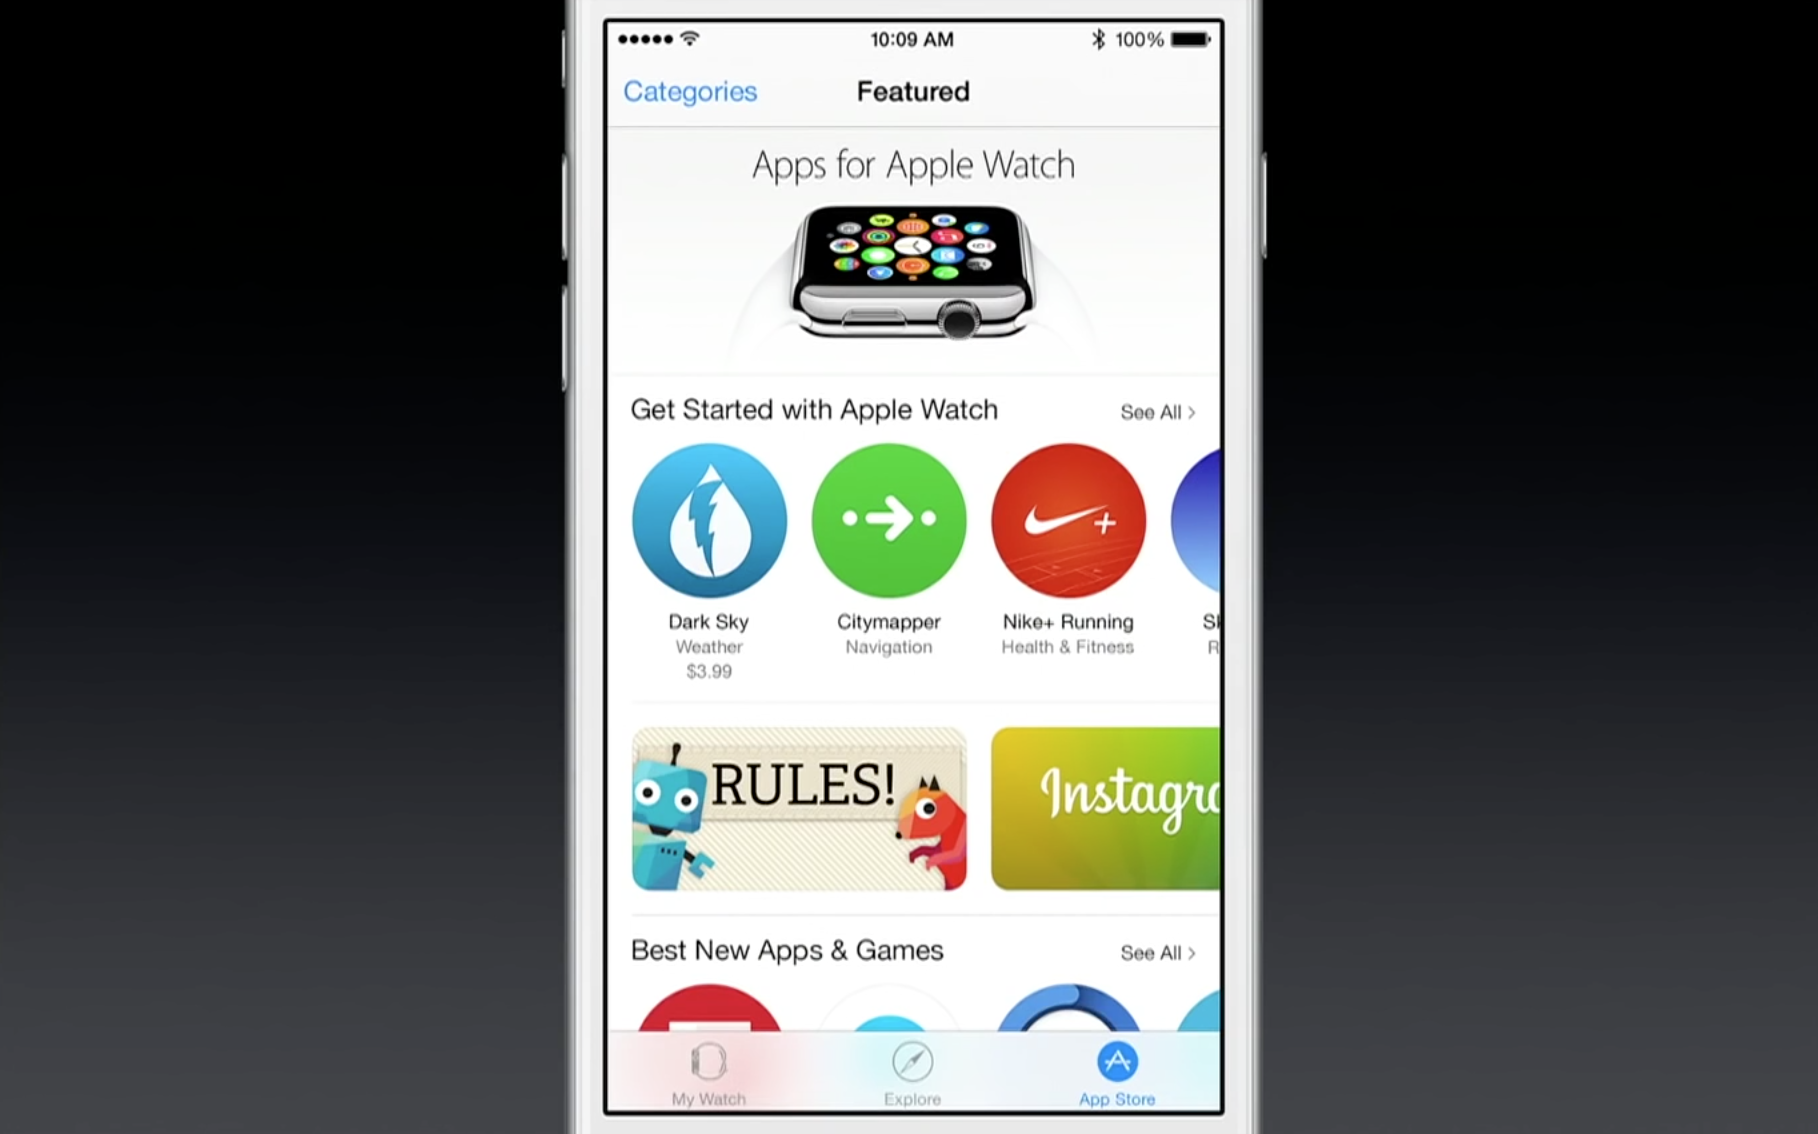 Apple Watch App Store